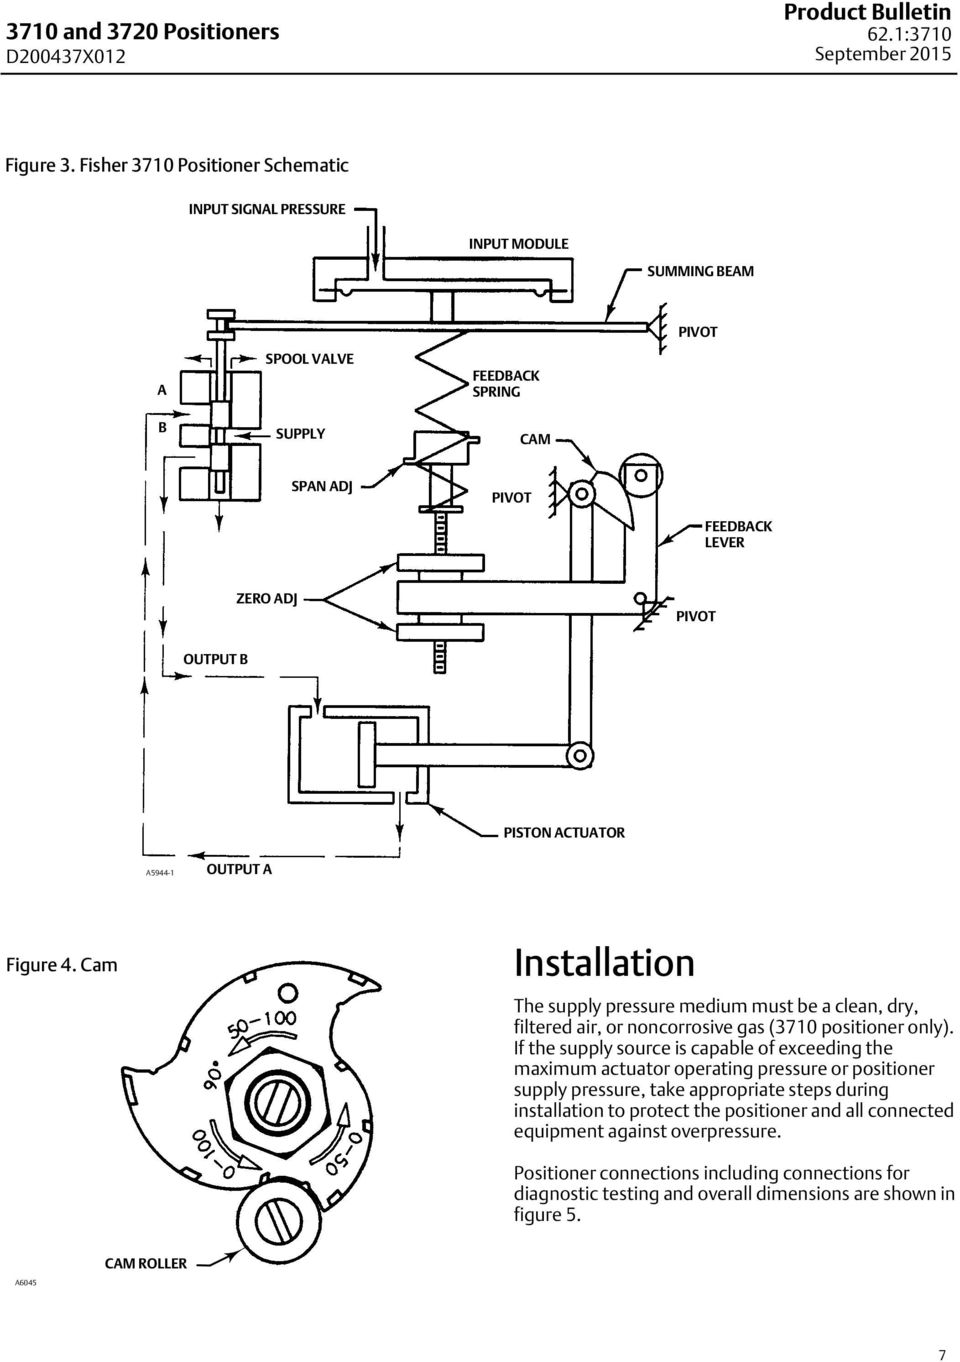 ACTUATOR A5944-1 OUTPUT A Figure 4. Cam Installation The supply pressure medium must be a clean, dry, filtered air, or noncorrosive gas (3710 positioner only).